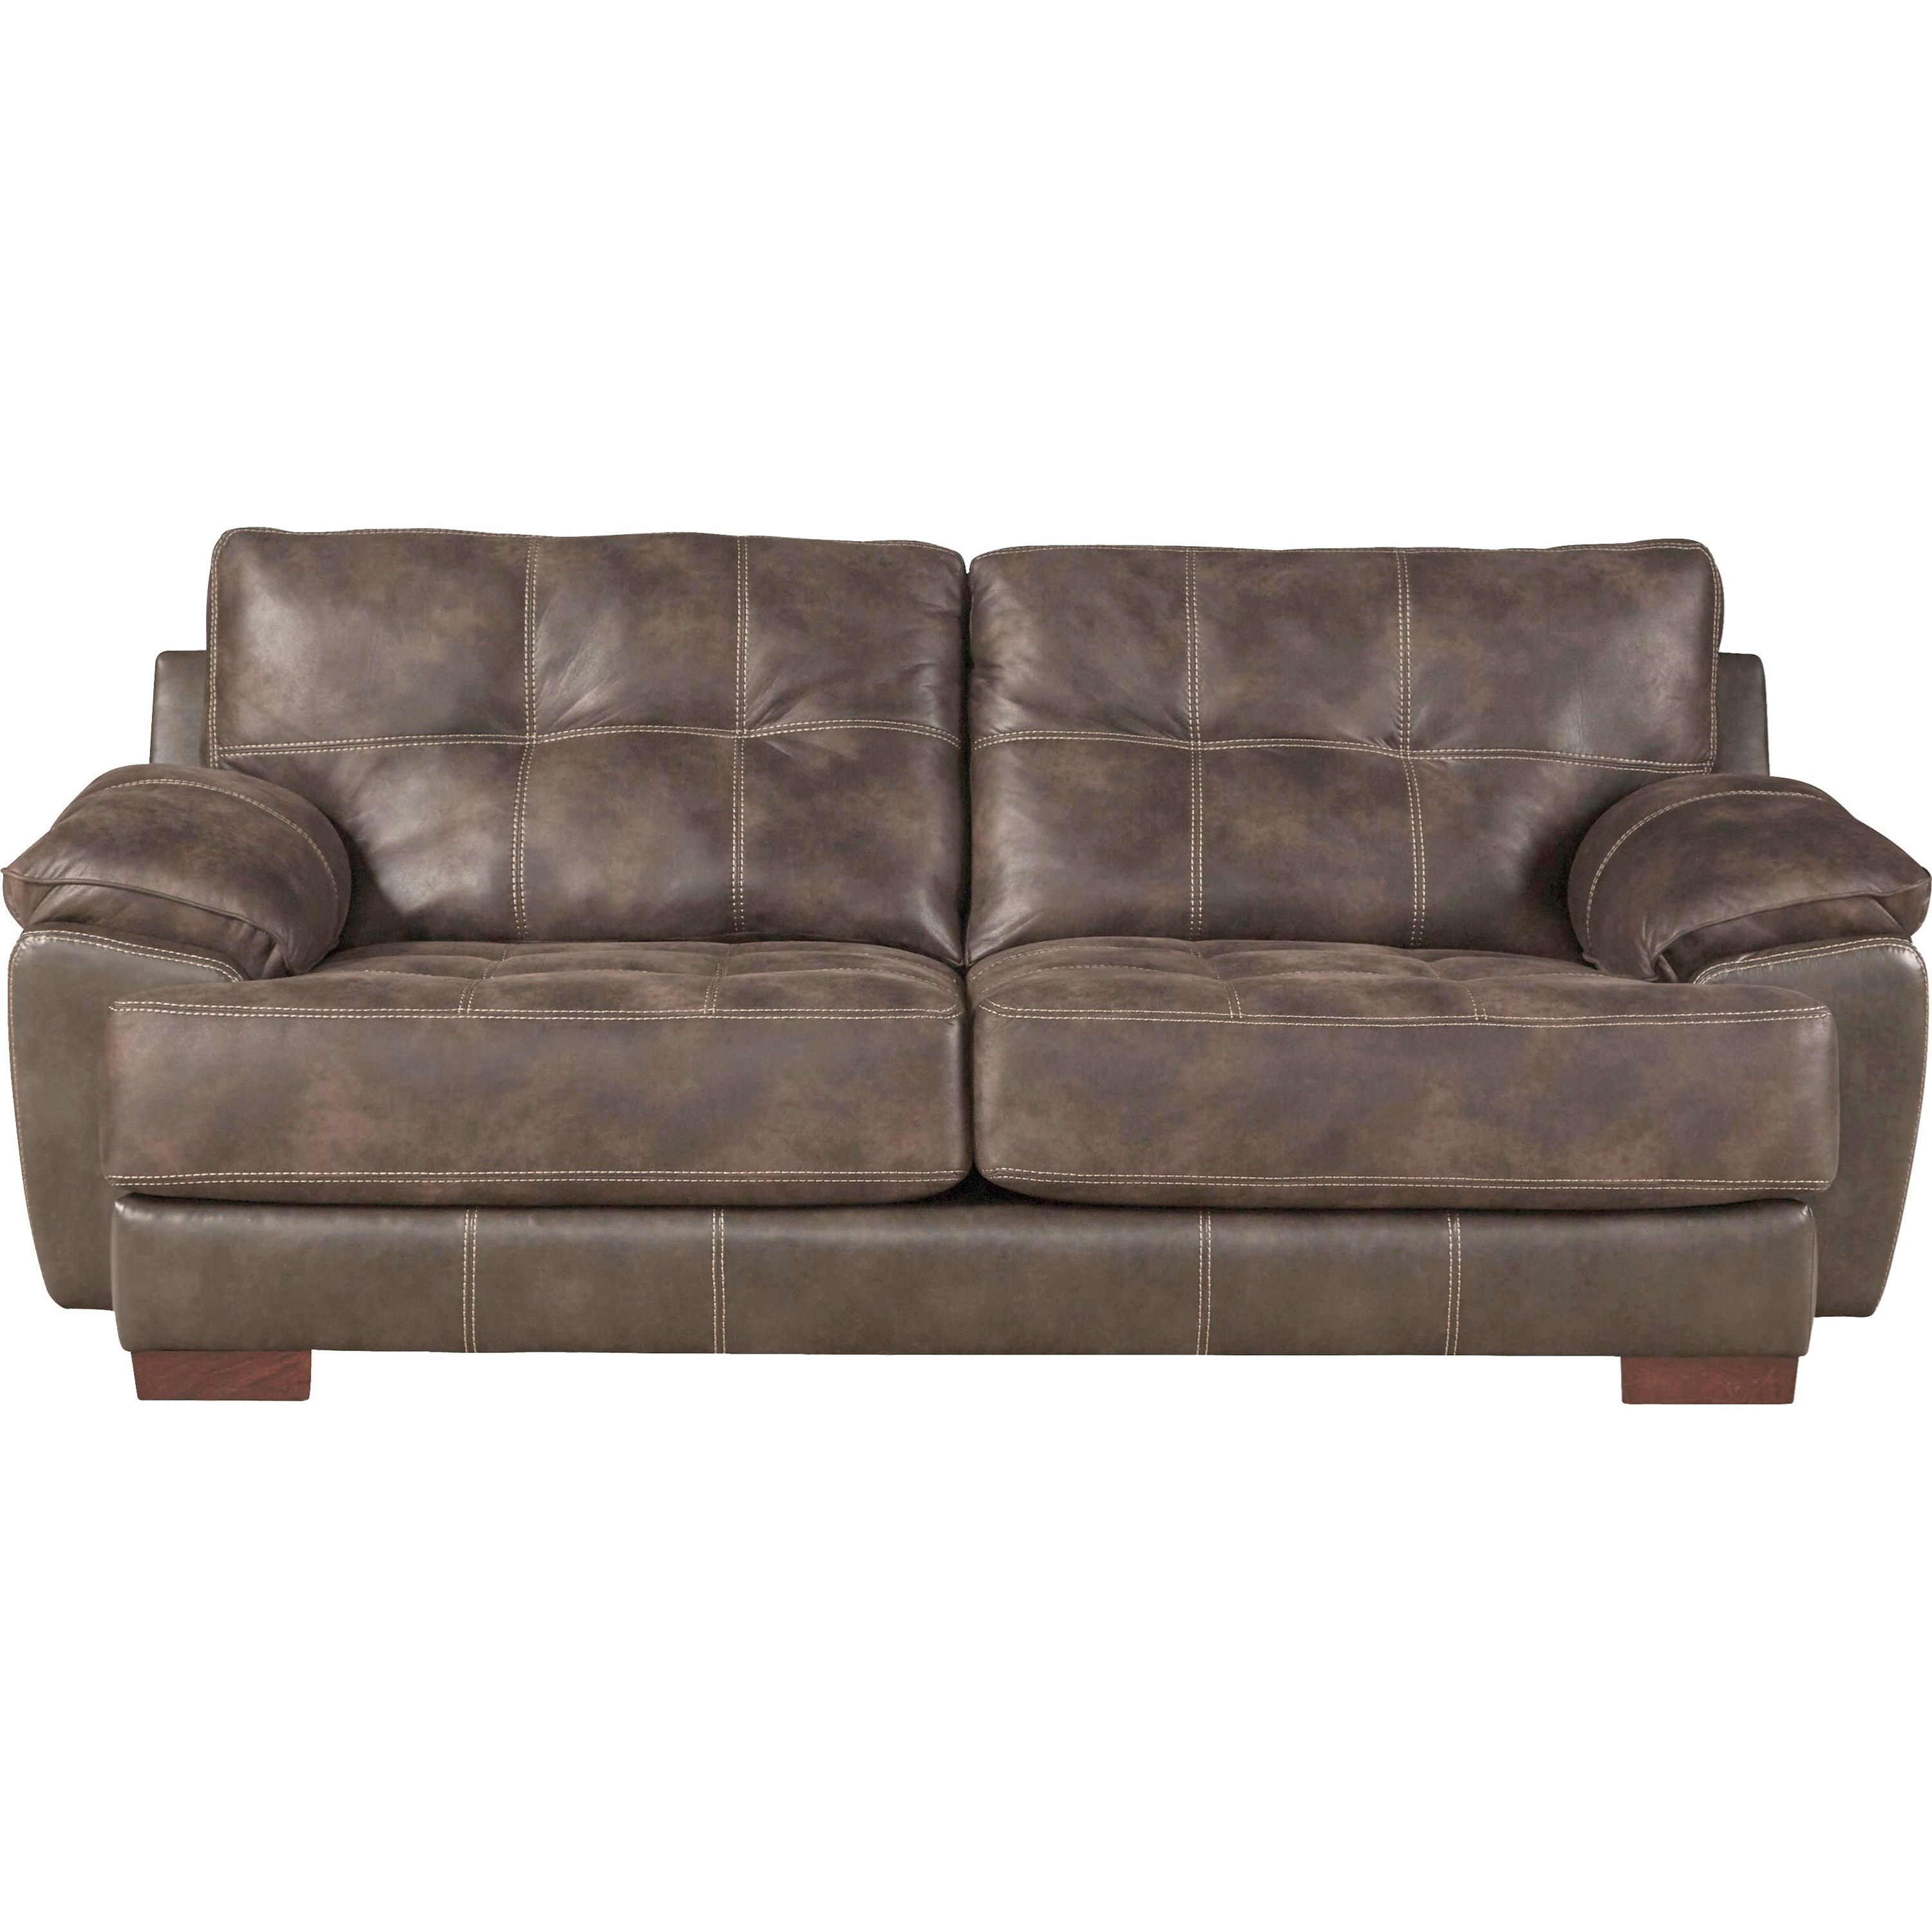 Drummond Two Seat Sofa by Jackson Furniture at Northeast Factory Direct